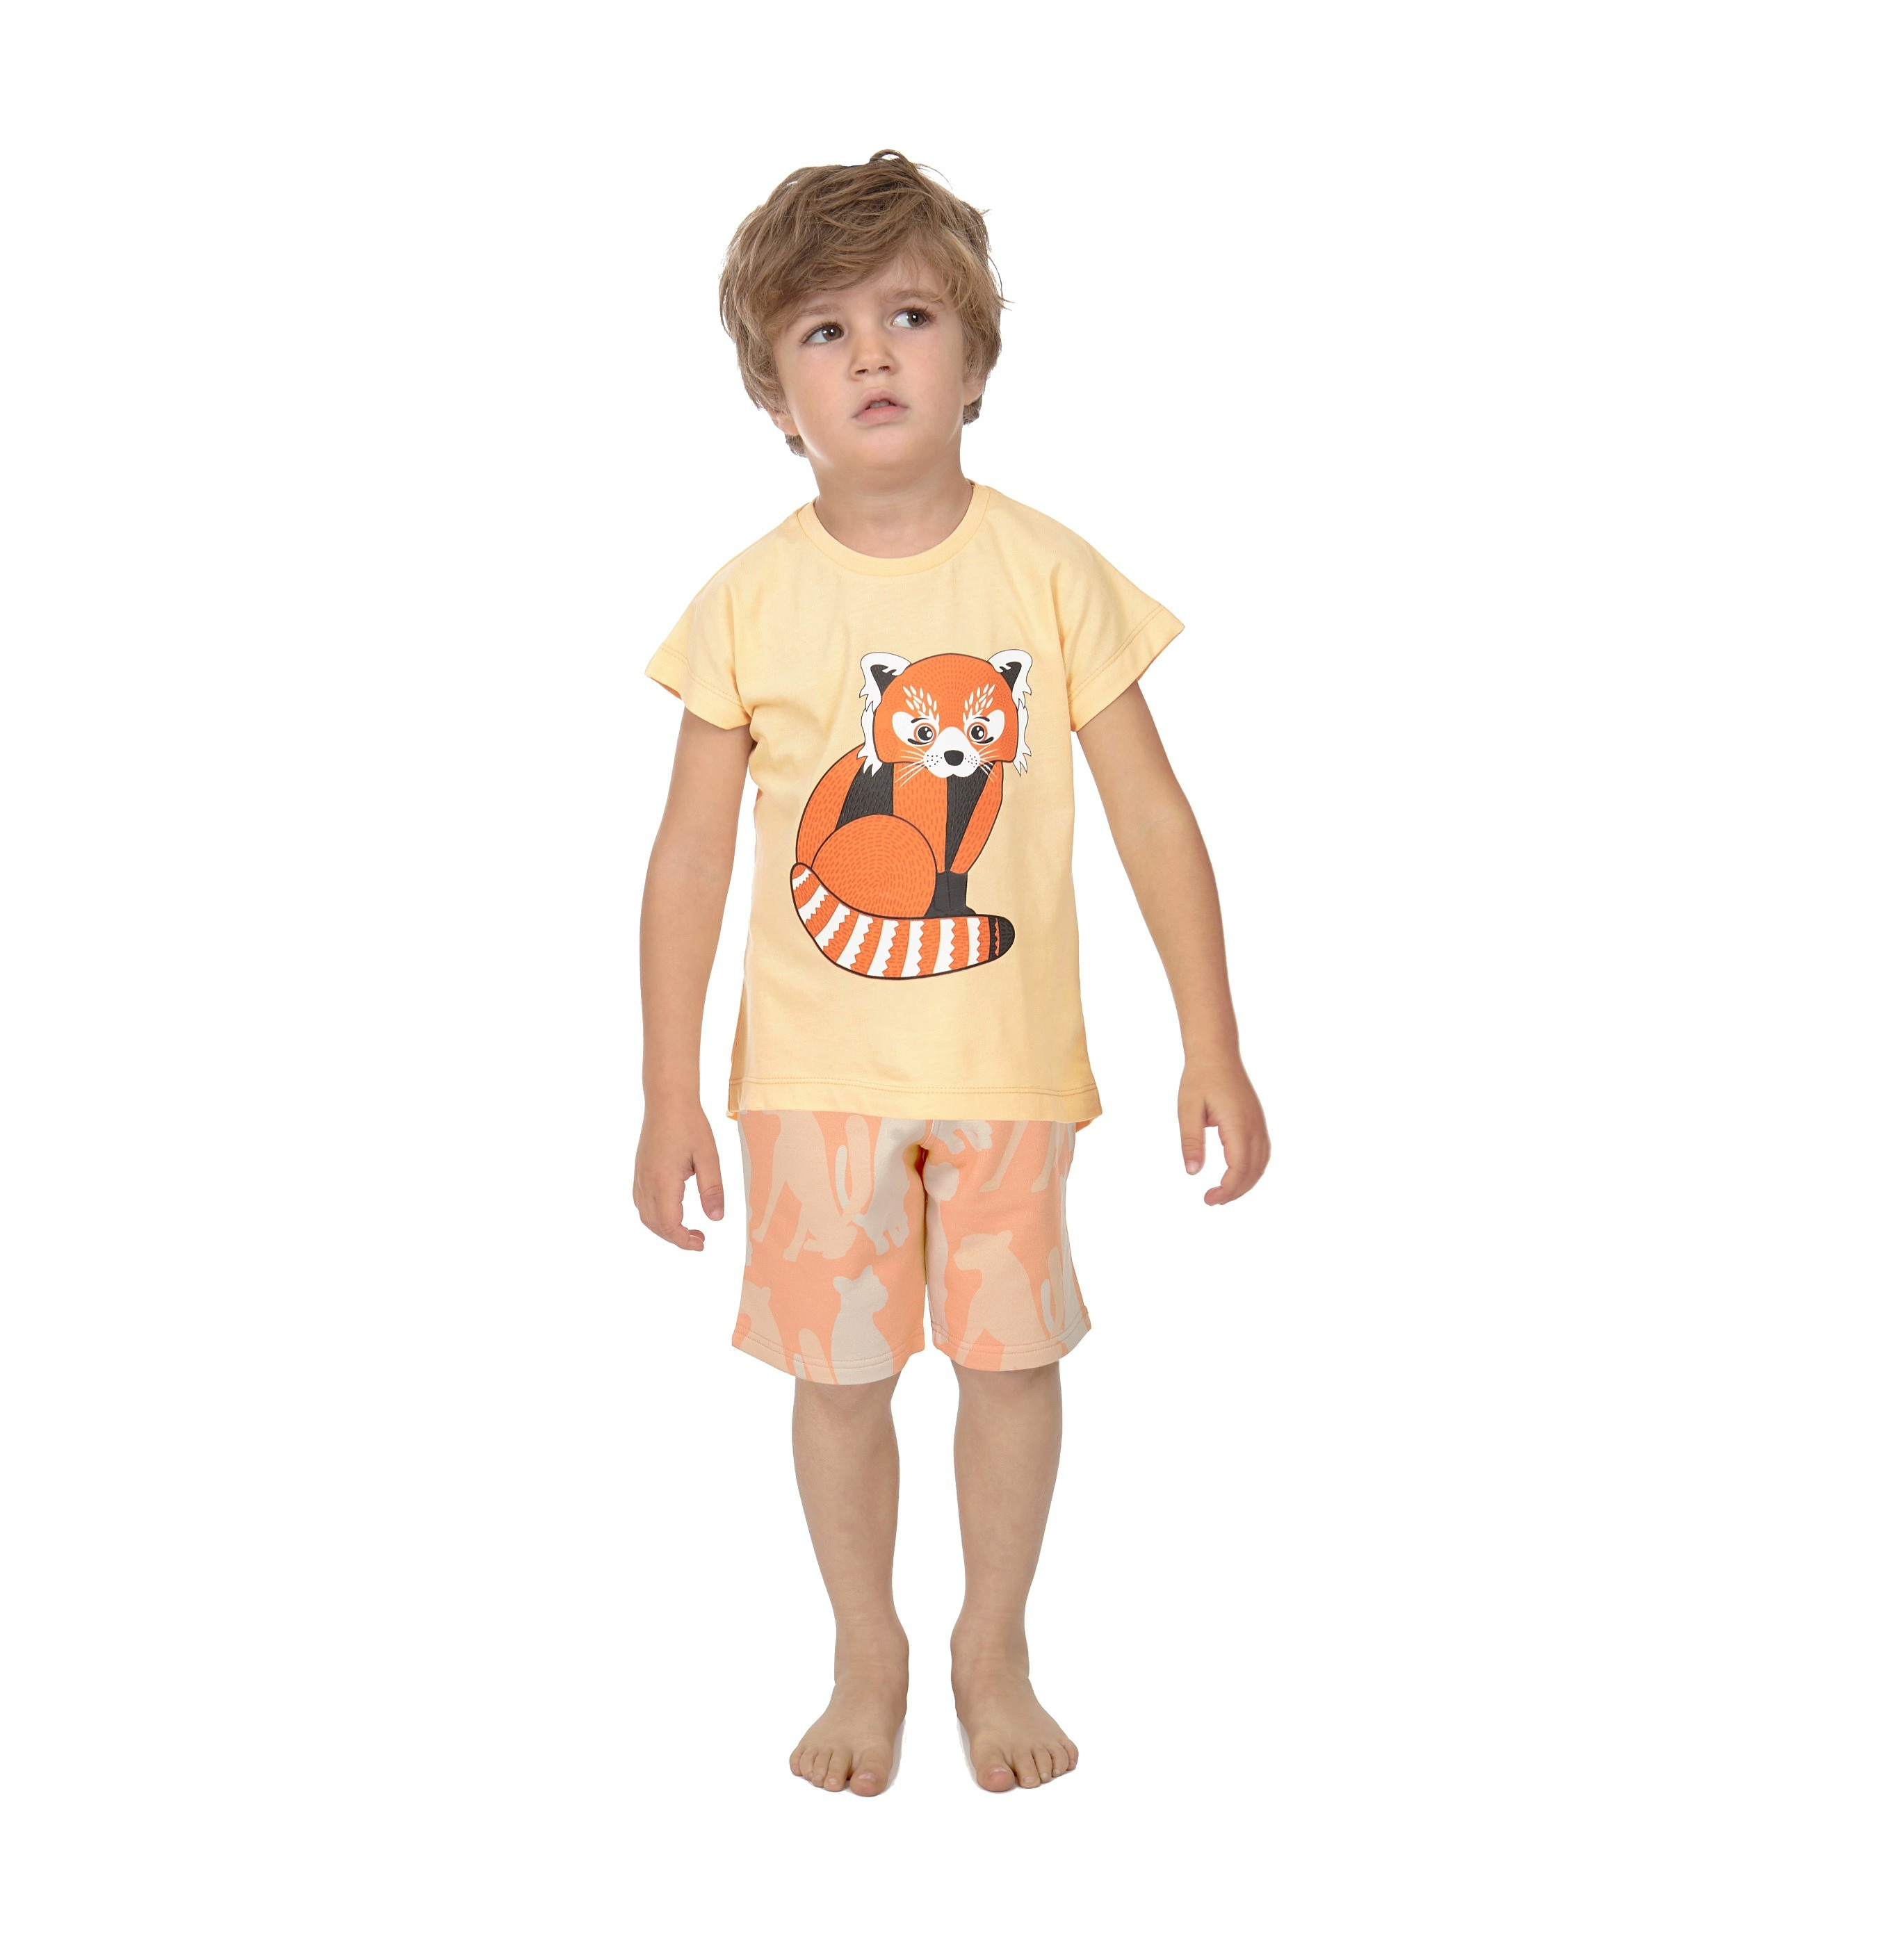 T-shirt Red Panda + Shorts Cheetah Silouette